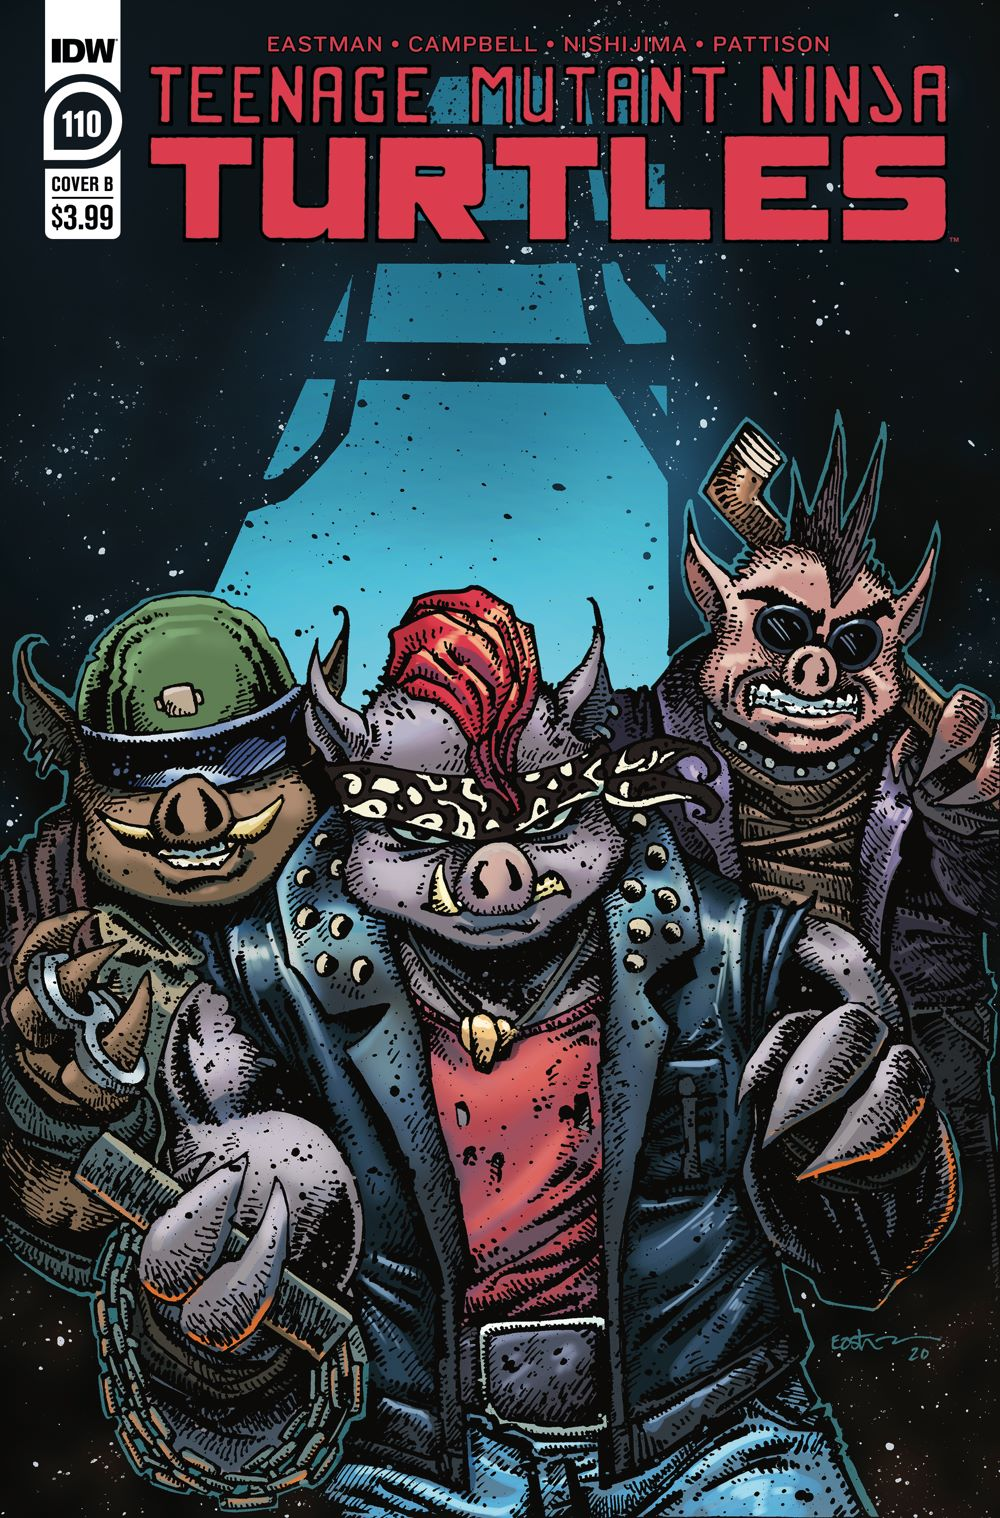 TMNT110_cvrB ComicList Previews: TEENAGE MUTANT NINJA TURTLES #110